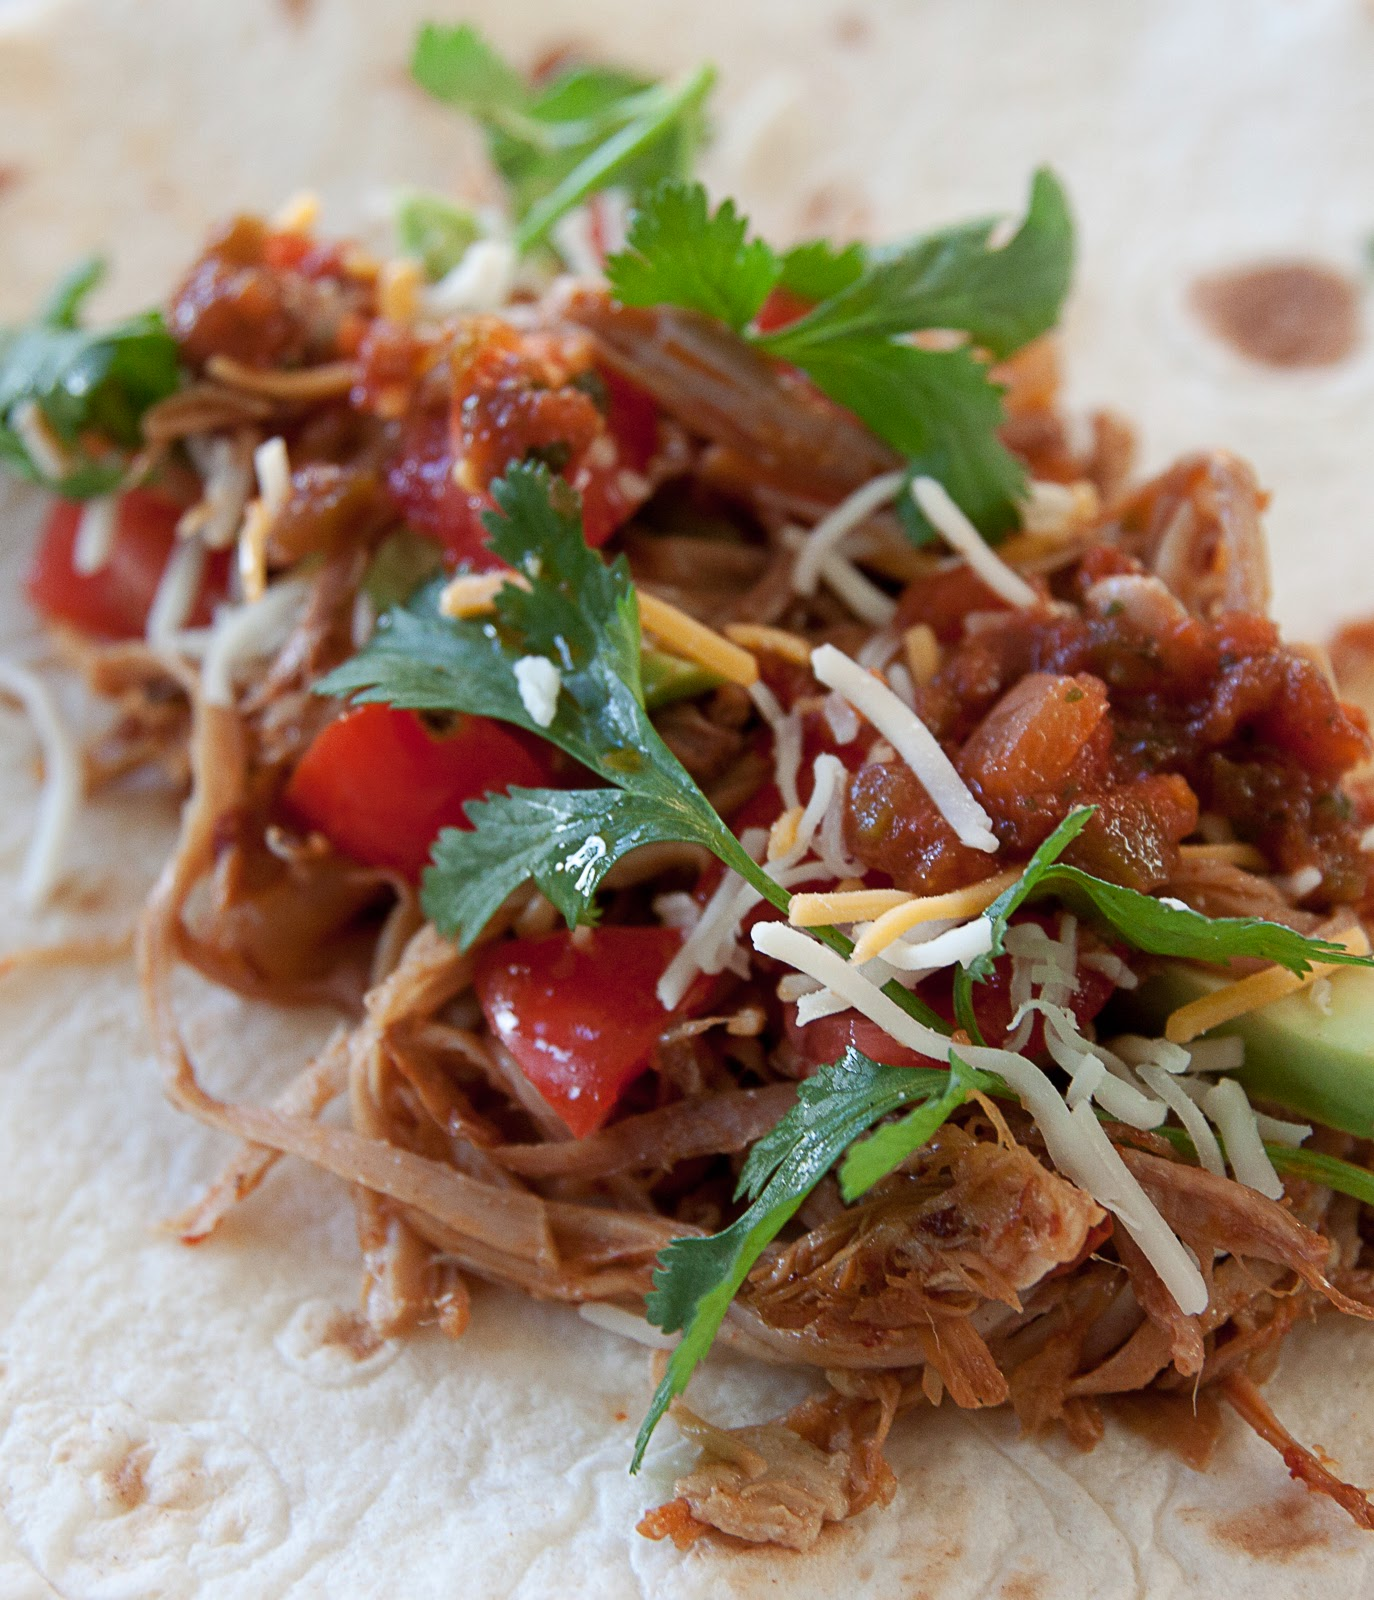 Road Ready with Spicy Pulled Pork Tacos